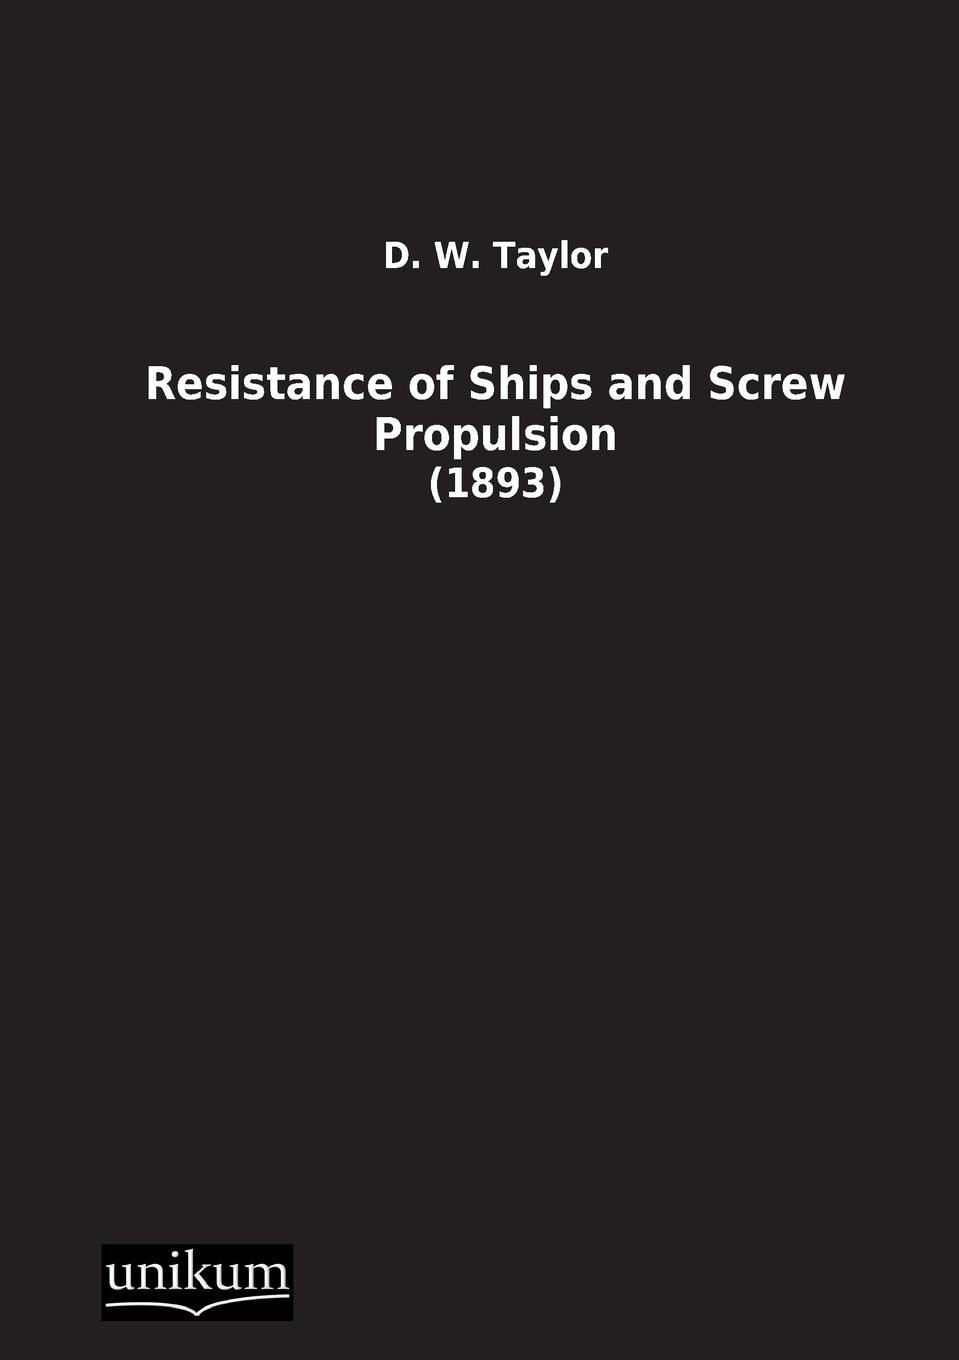 D. W. Taylor Resistance of Ships and Screw Propulsion эксмо язык телодвижений